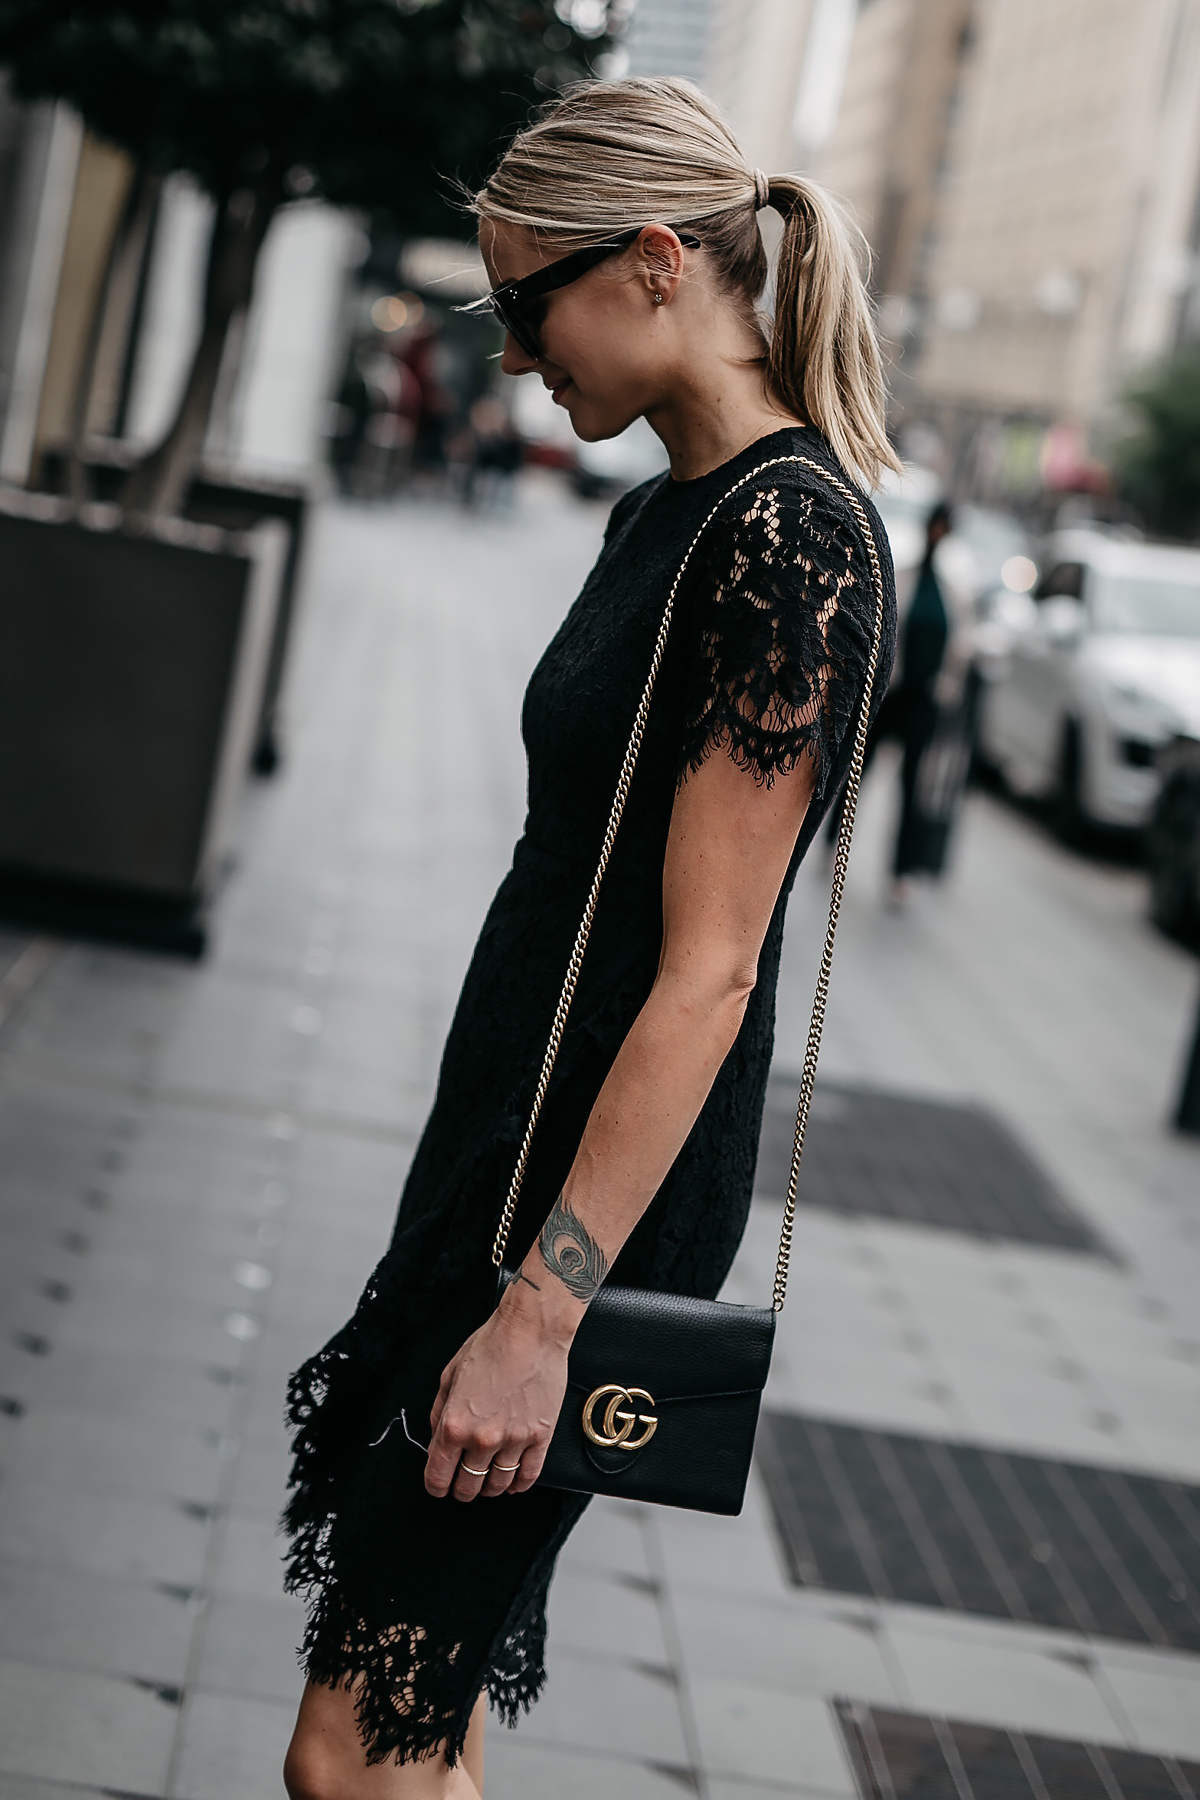 Blonde Woman Wearing Black Lace Dress Black Gucci Marmont Handbag Fashion Jackson Dallas Blogger Fashion Blogger Street Style